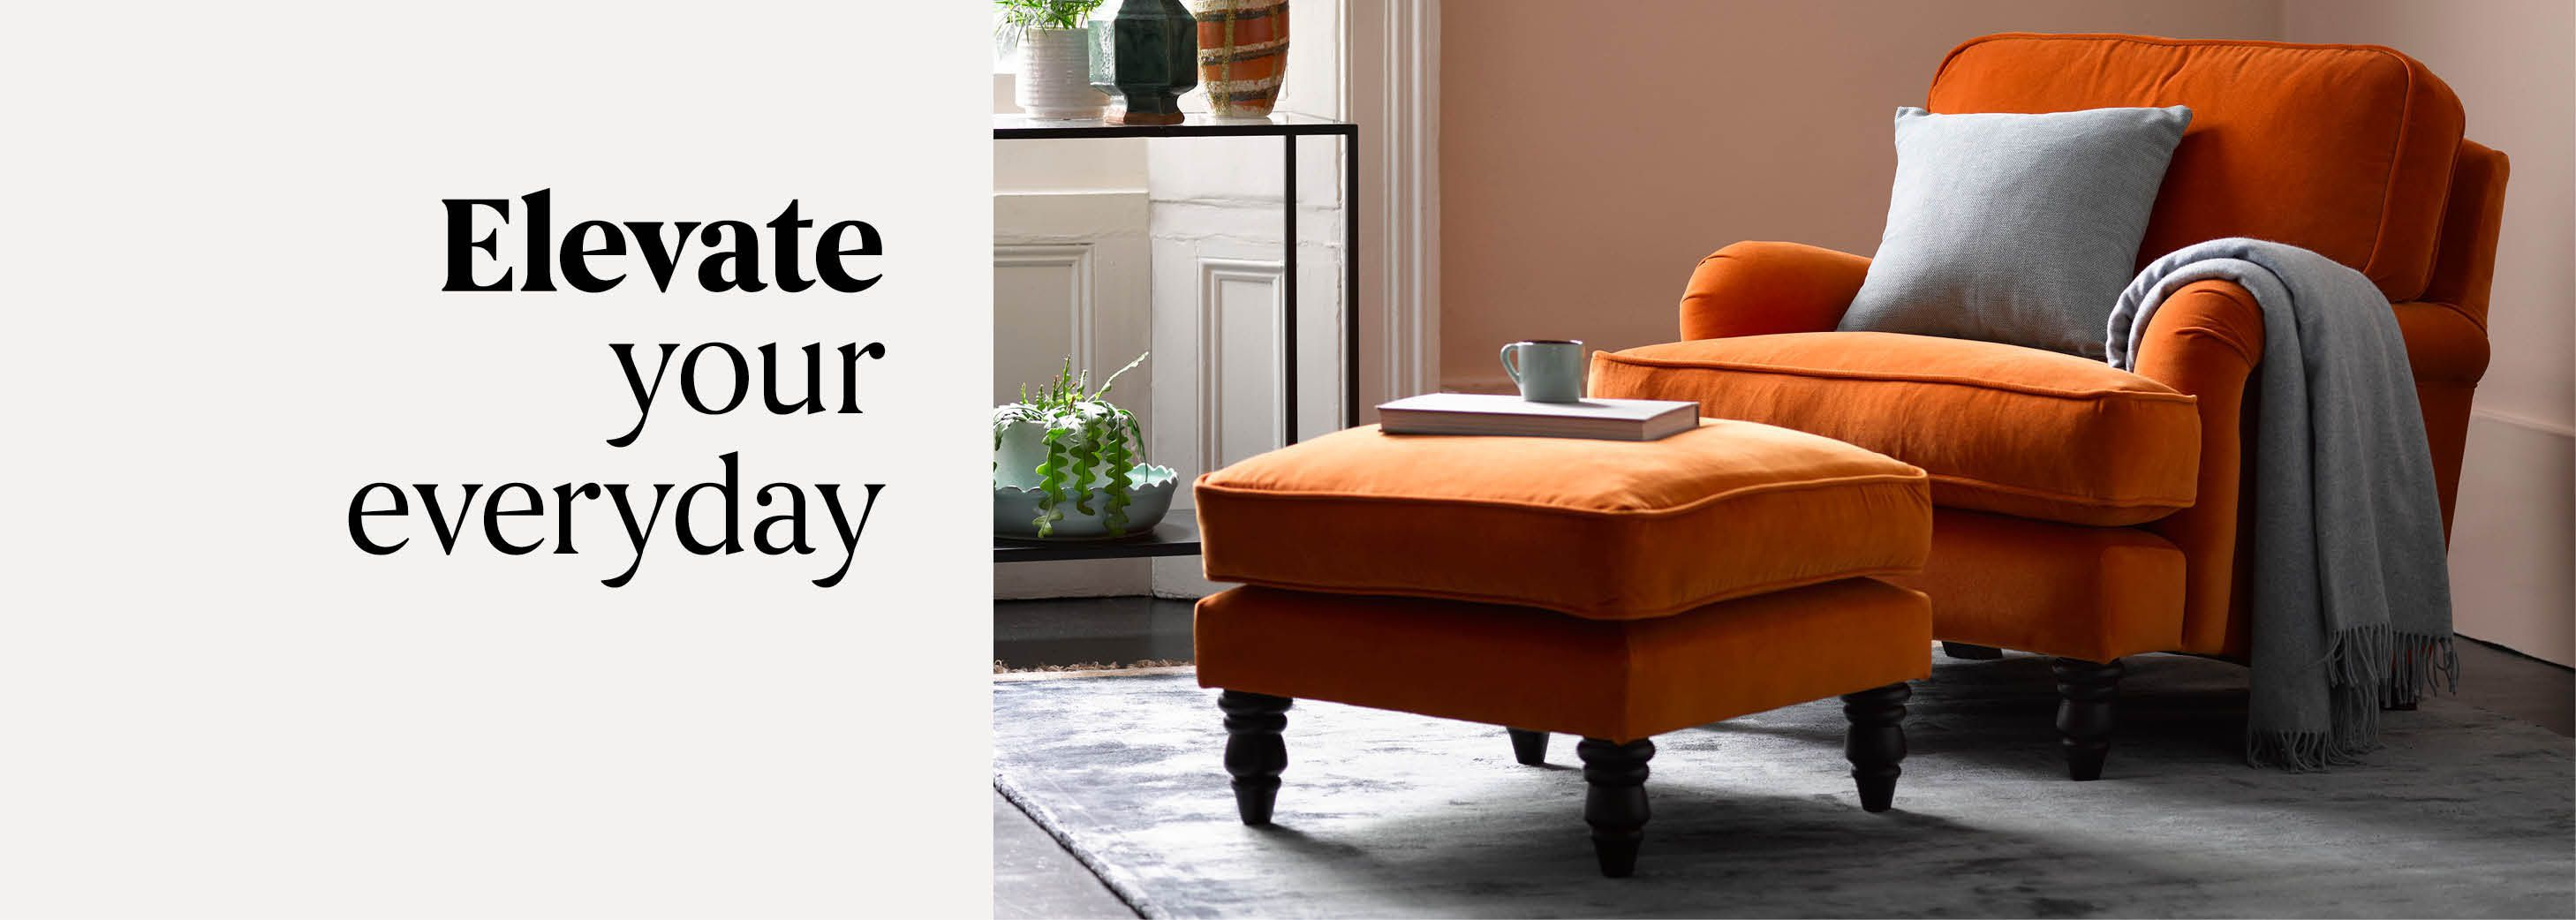 Elevate your everyday - Shop Footstools